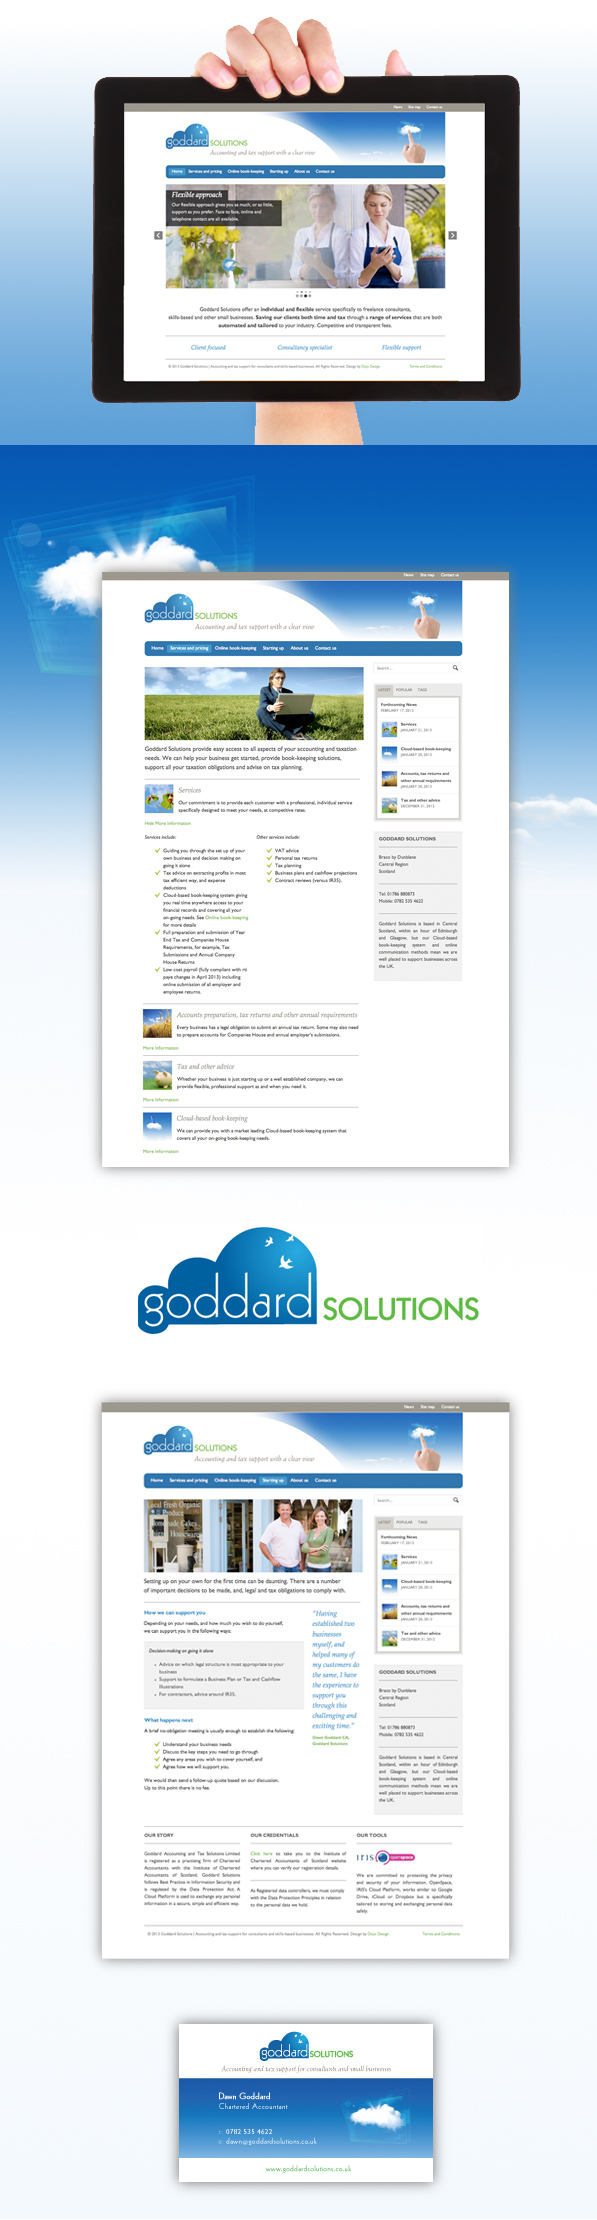 folio_goddardsolutions